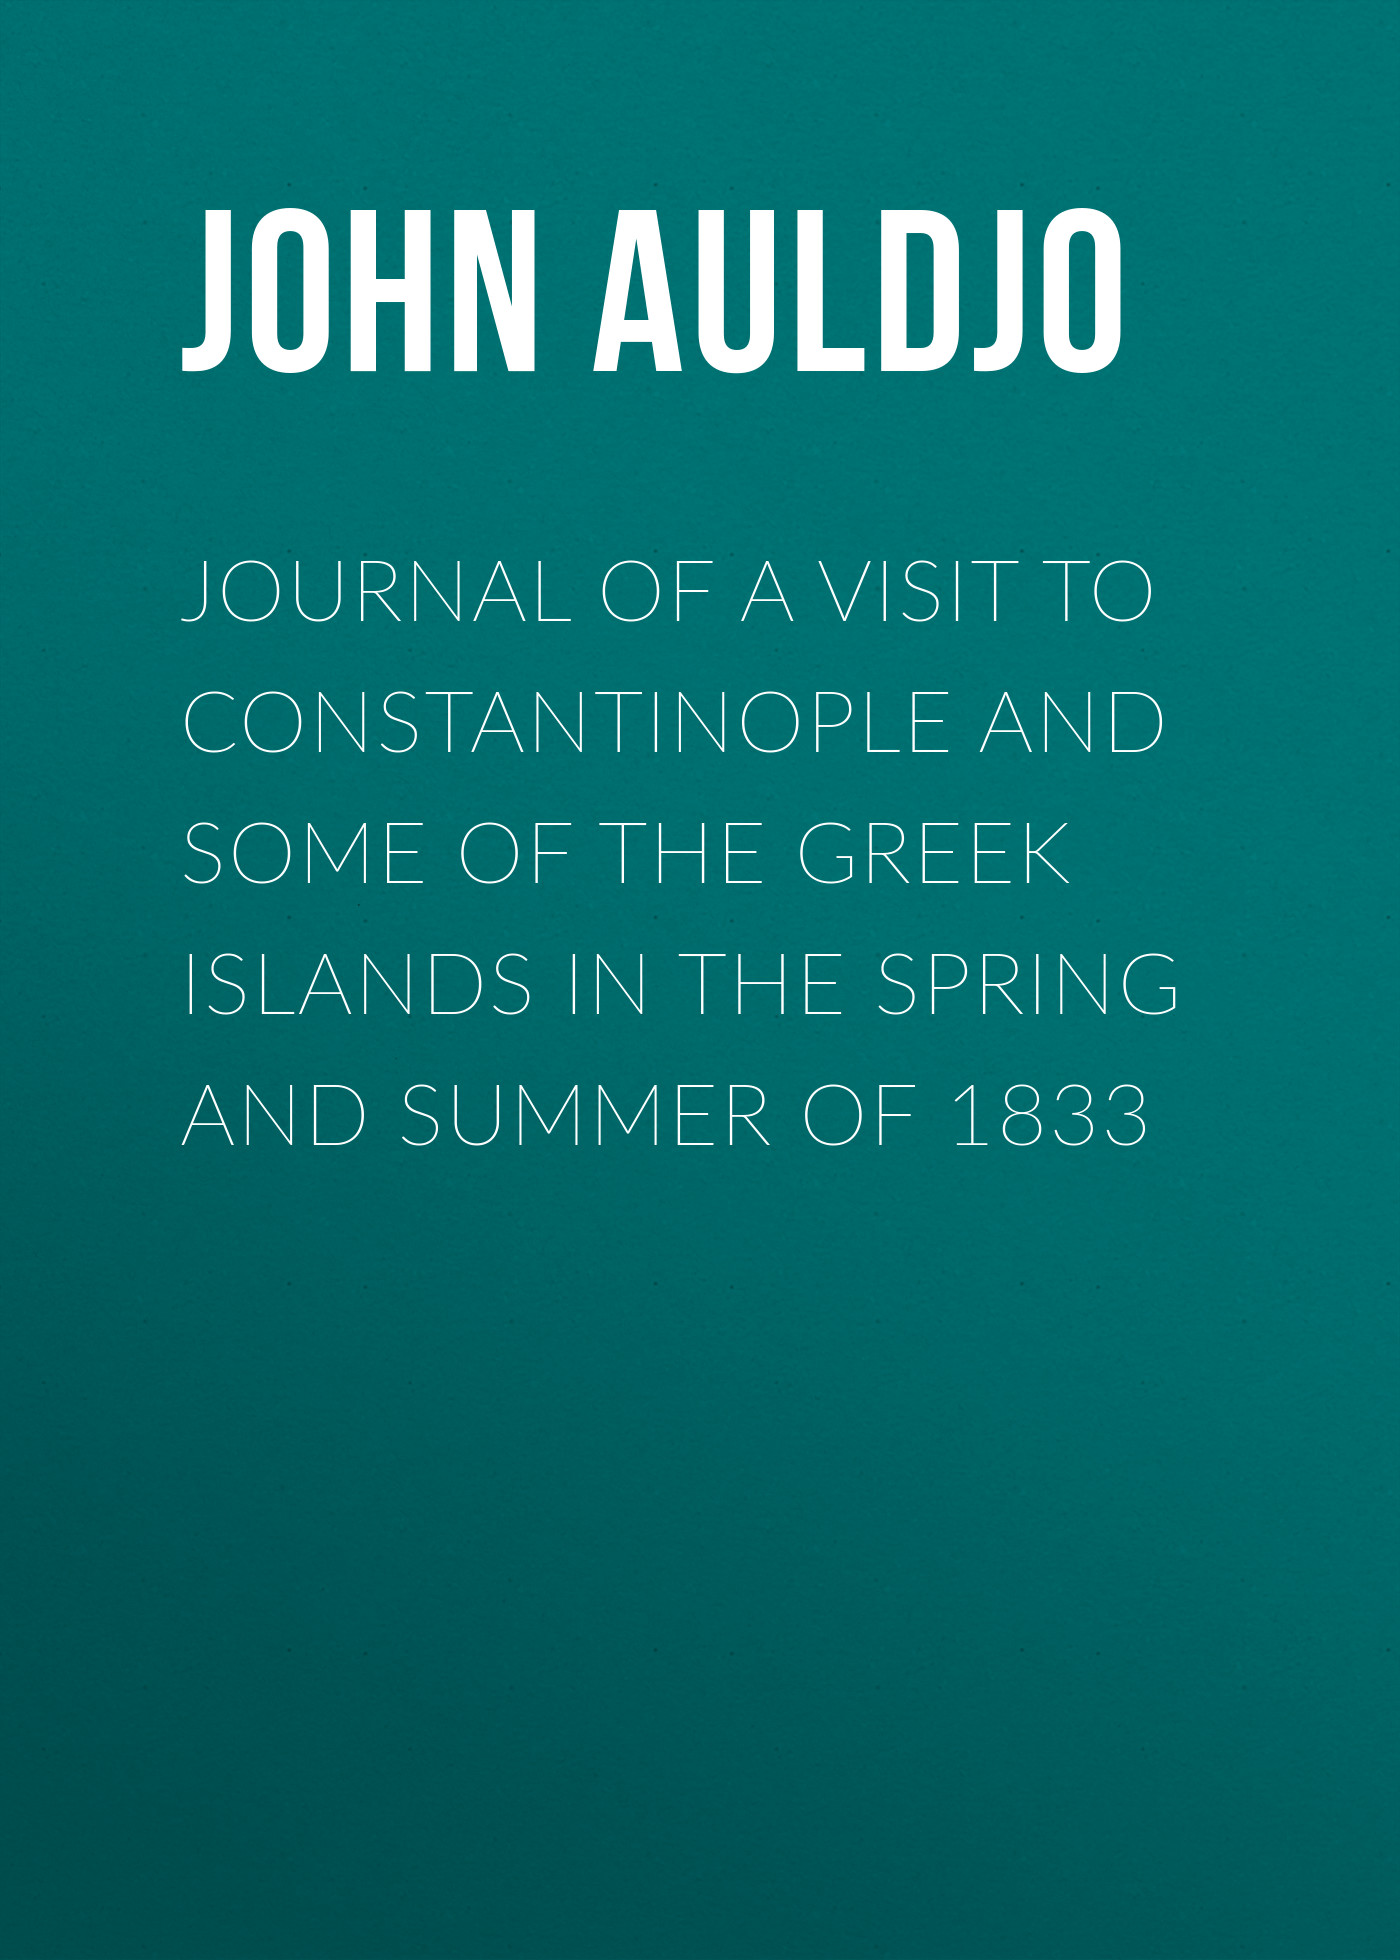 Auldjo John Journal of a Visit to Constantinople and Some of the Greek Islands in the Spring and Summer of 1833 london j john barleycorn and jerry of the islands